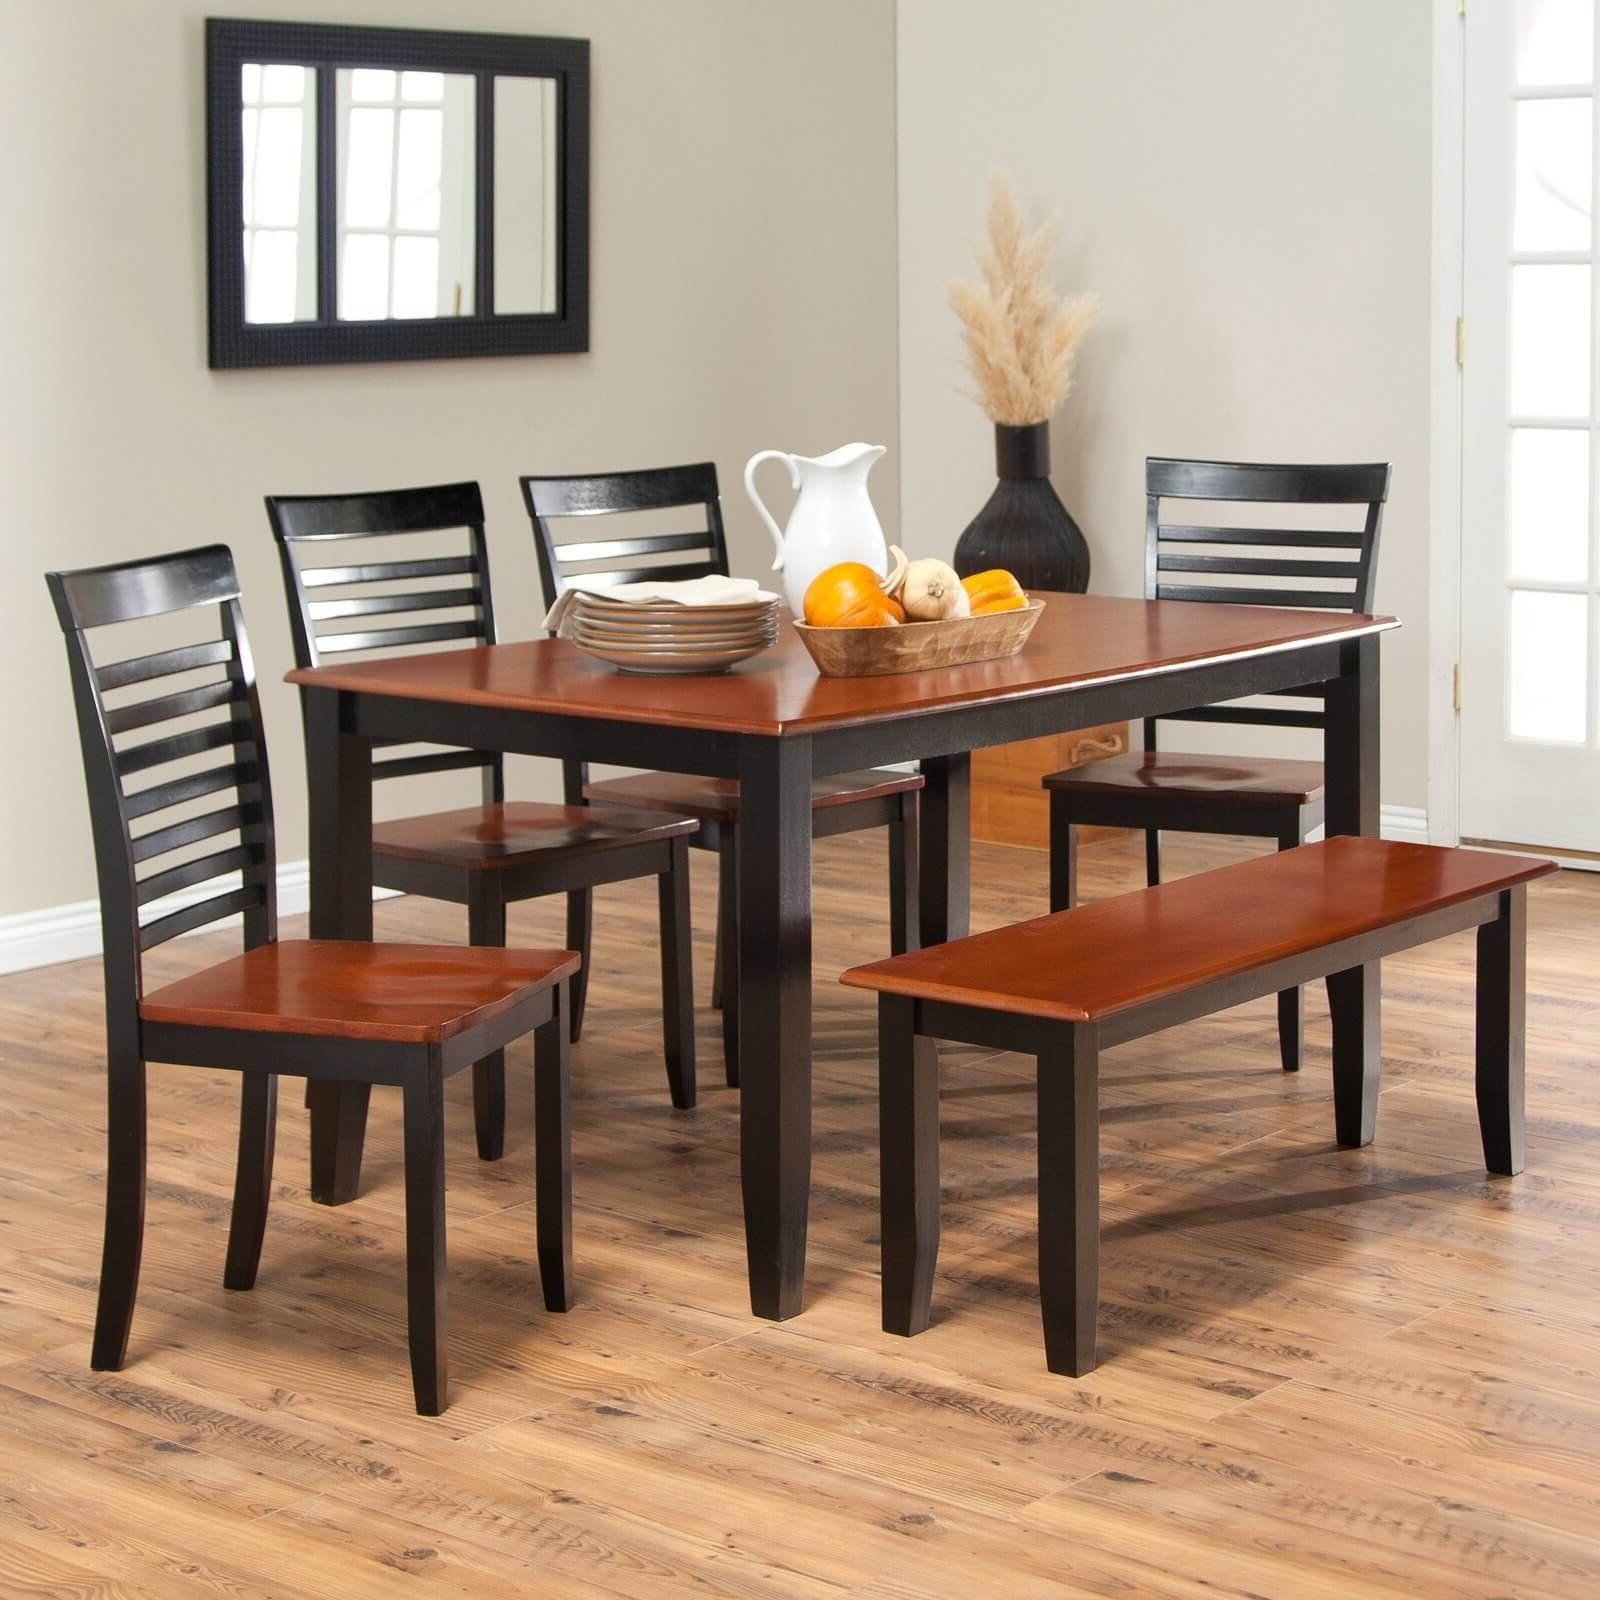 Most Recent Small Dining Tables And Bench Sets Pertaining To 26 Dining Room Sets (Big And Small) With Bench Seating (2018) (View 17 of 25)